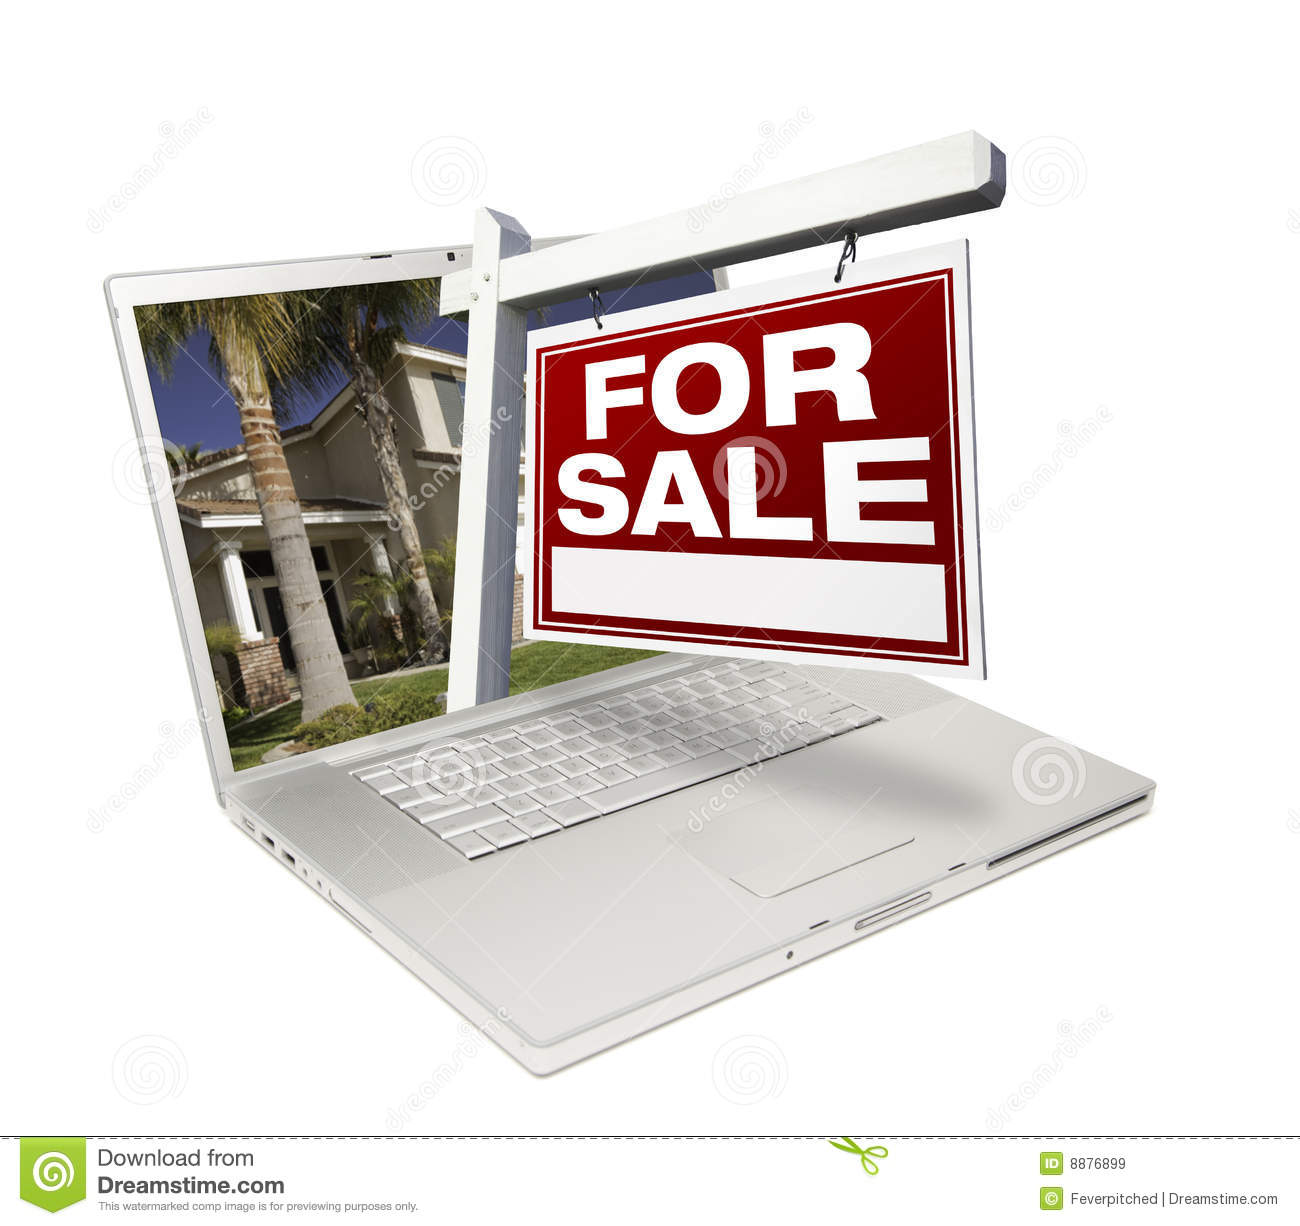 Real estate signs picture sold home for sale sign images for New home sign